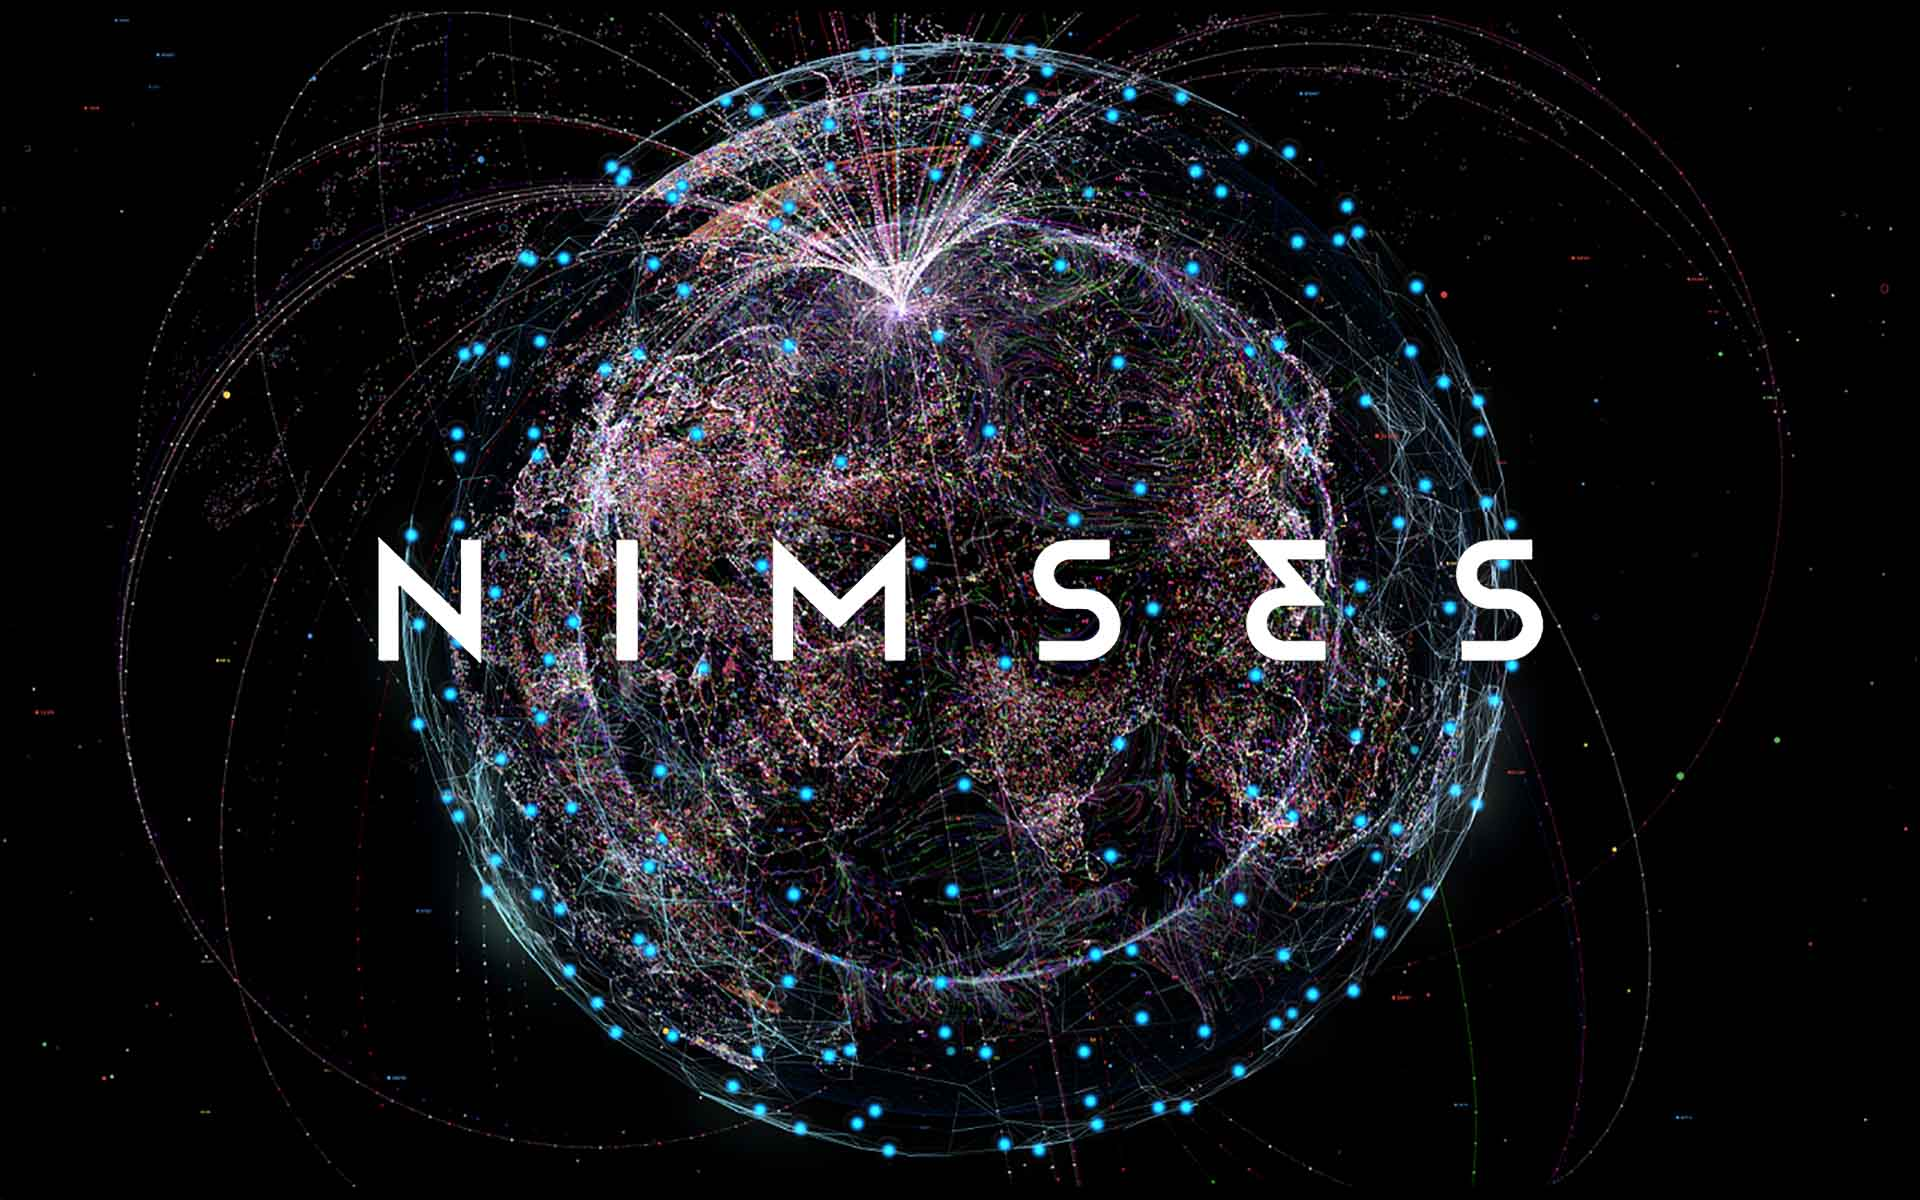 Meet Nimses — Global Treasury of Human Lifetime. A Singular Technology to Deal With Plural Planetary Challenges.